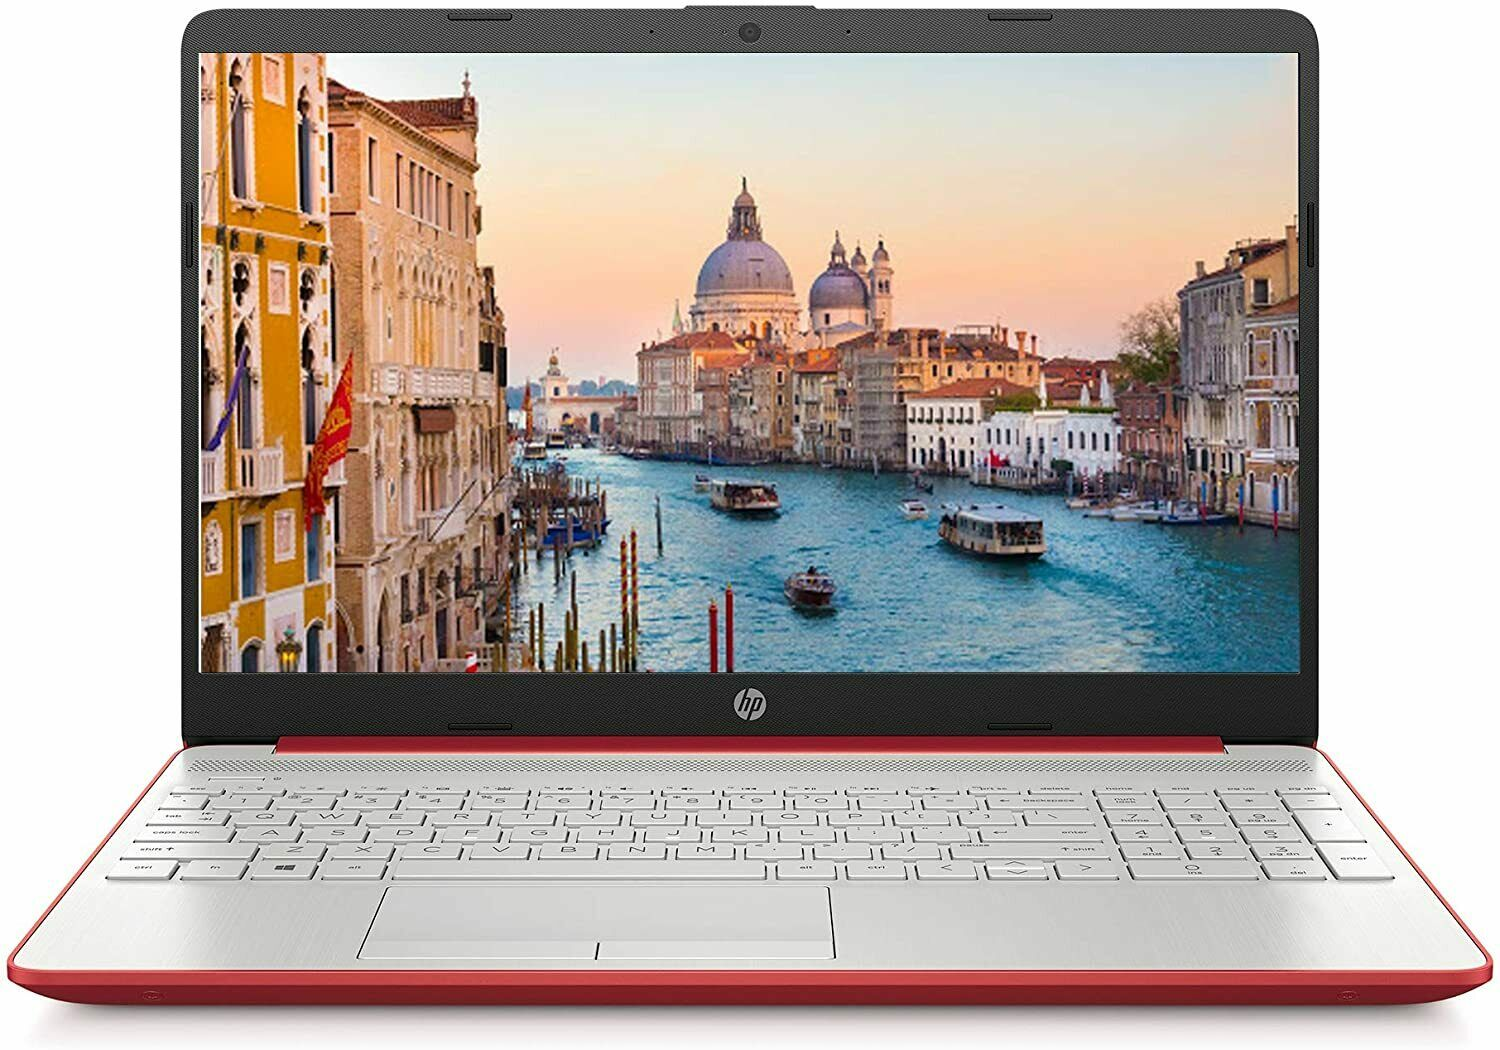 "Laptop Windows - NEW HP 15.6"" Laptop HD Intel-2.4GHz,4GB DDR4 RAM,500GB HDD,Webcam,Windows 10,Red"